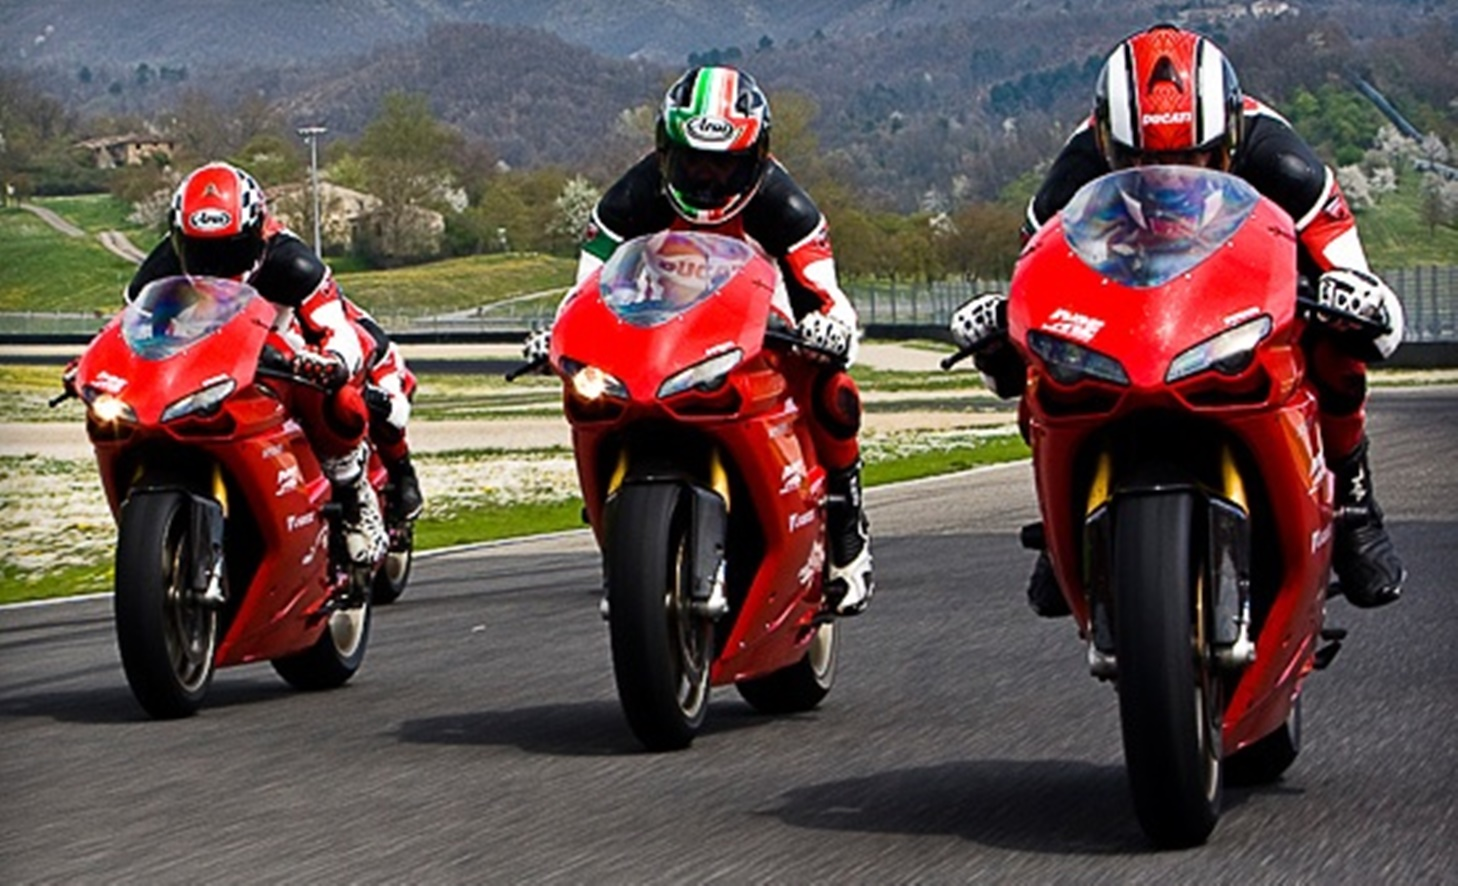 Ducati DRE Track Days - First Indian Edition at Buddh International Circuit